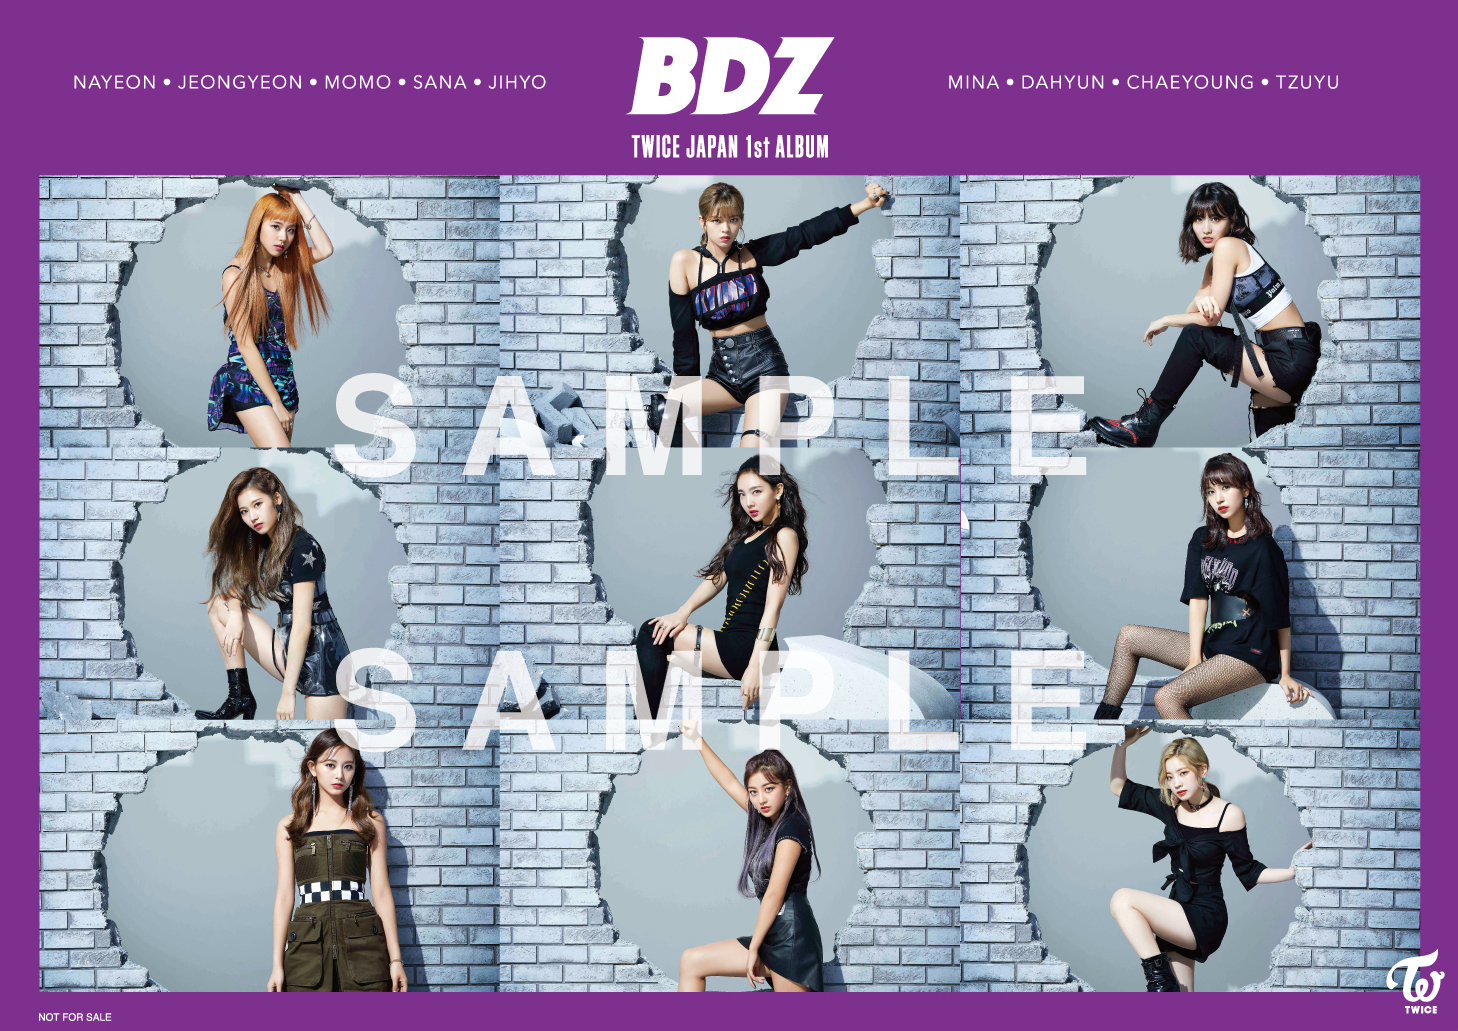 TWICE JAPAN 1st ALBUM「BDZ」